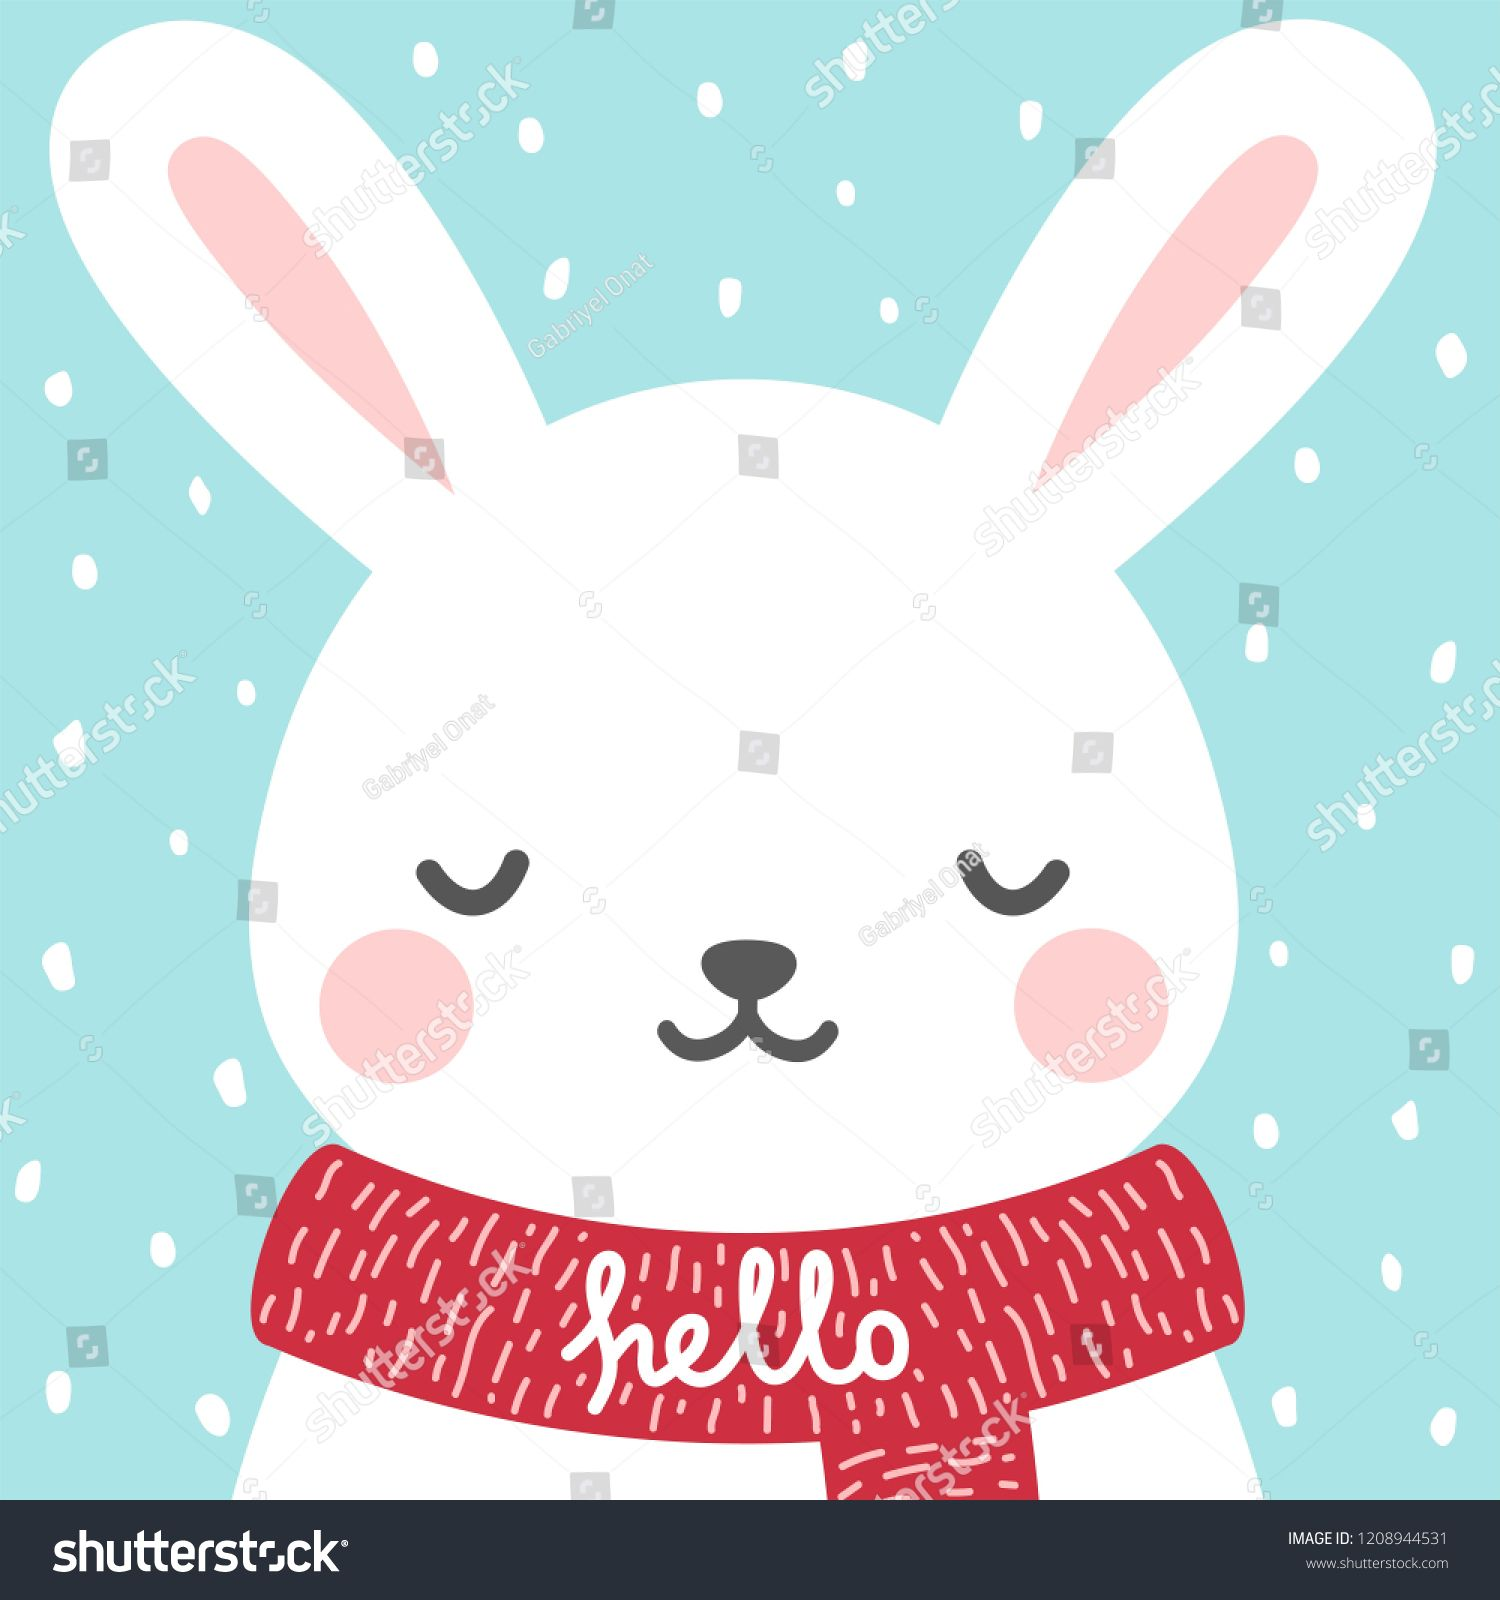 Cute Rabbit Winter Theme Card Easter Or Christmas Bunny Face Background Vector Illustrationtheme Card Easter Christmas Bunny Winter Theme Vector Illustration